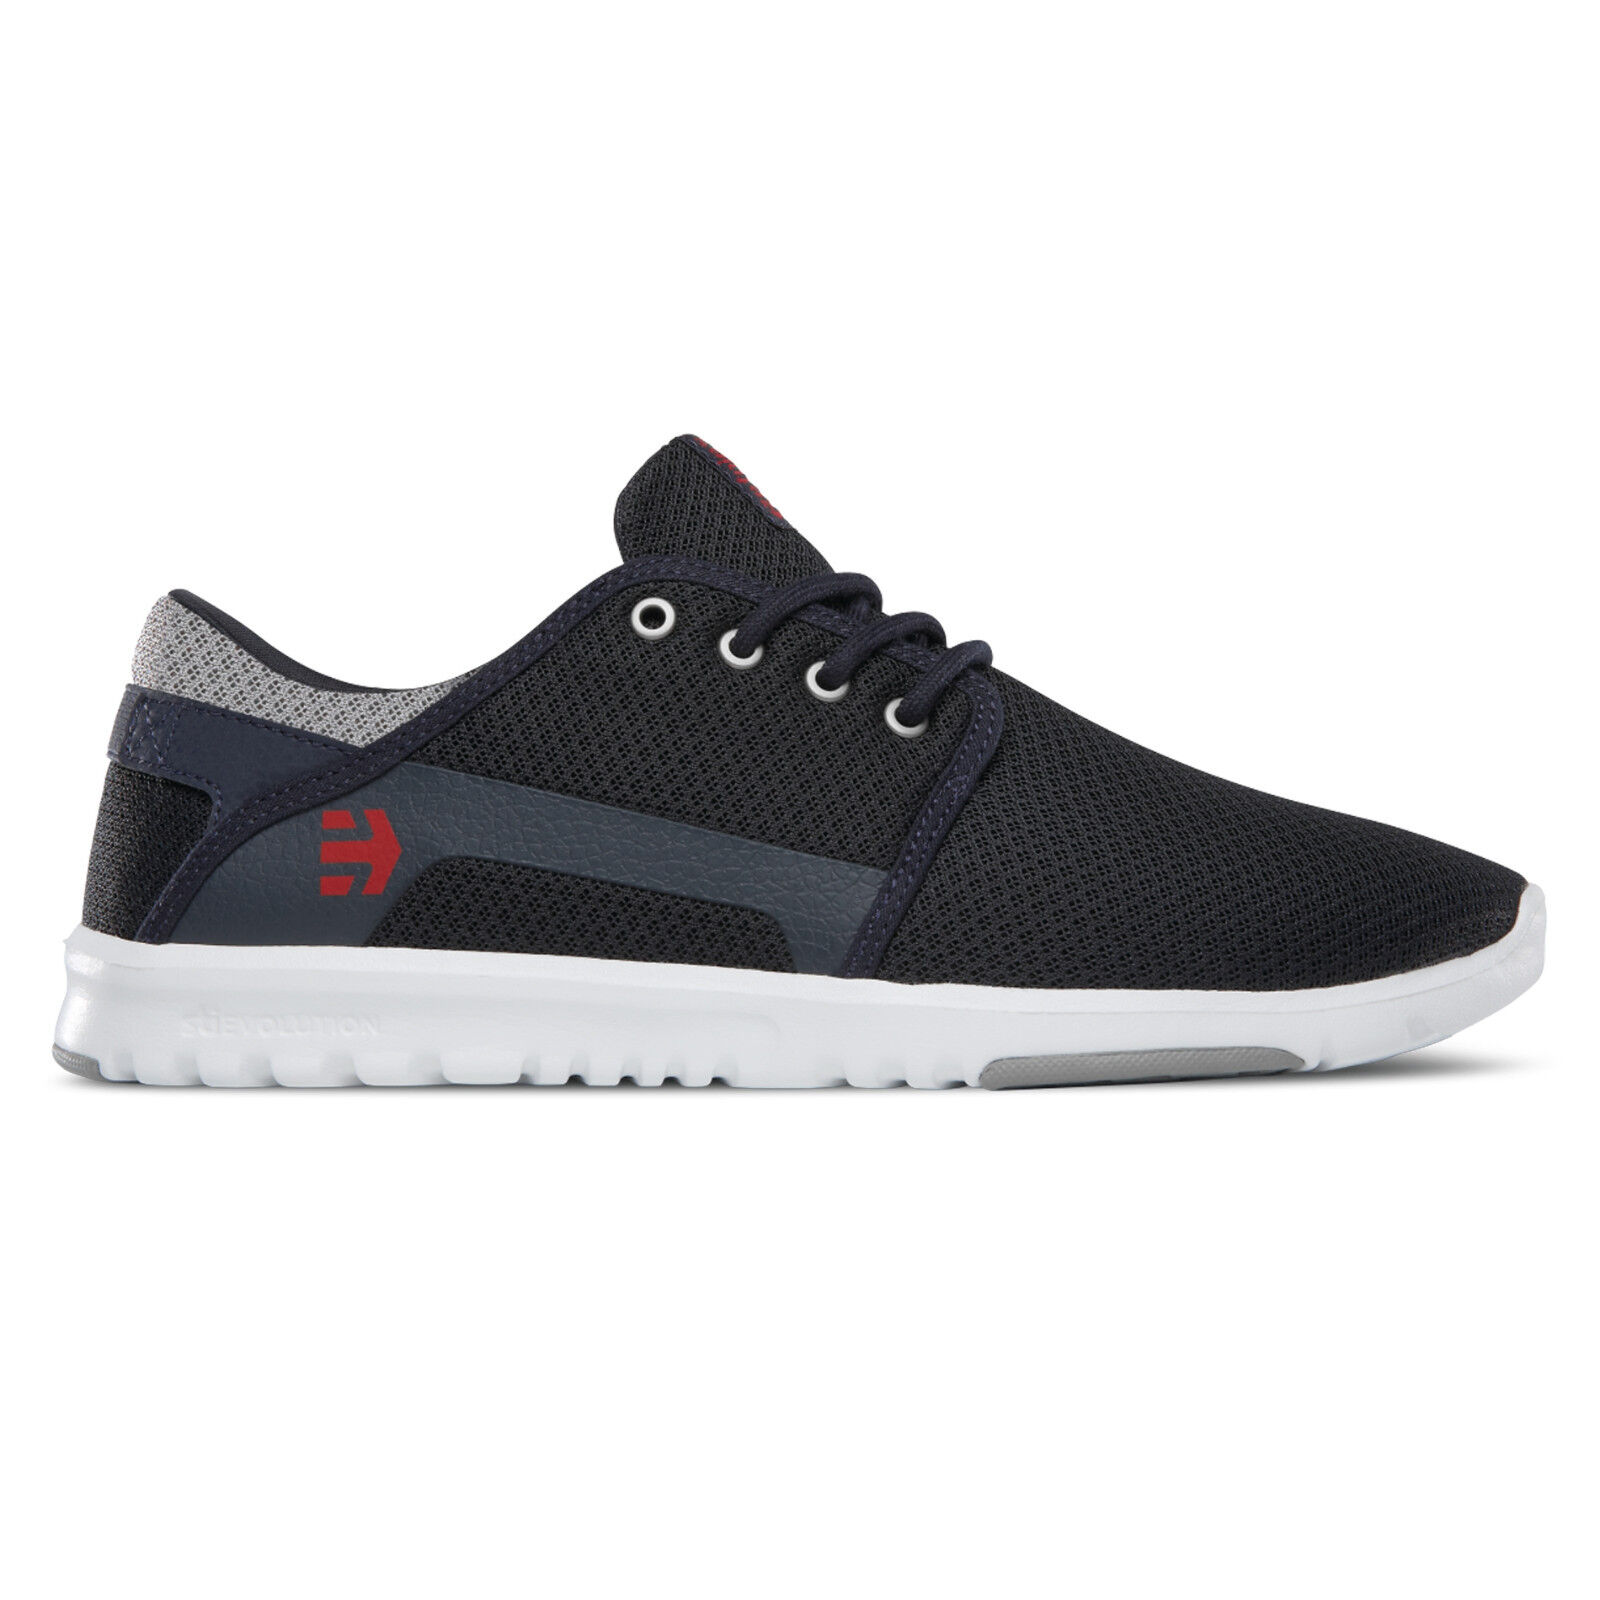 Etnies - Scout 4101000419 410 Navy Grey Red Ultra Light shoes Trainers Summer